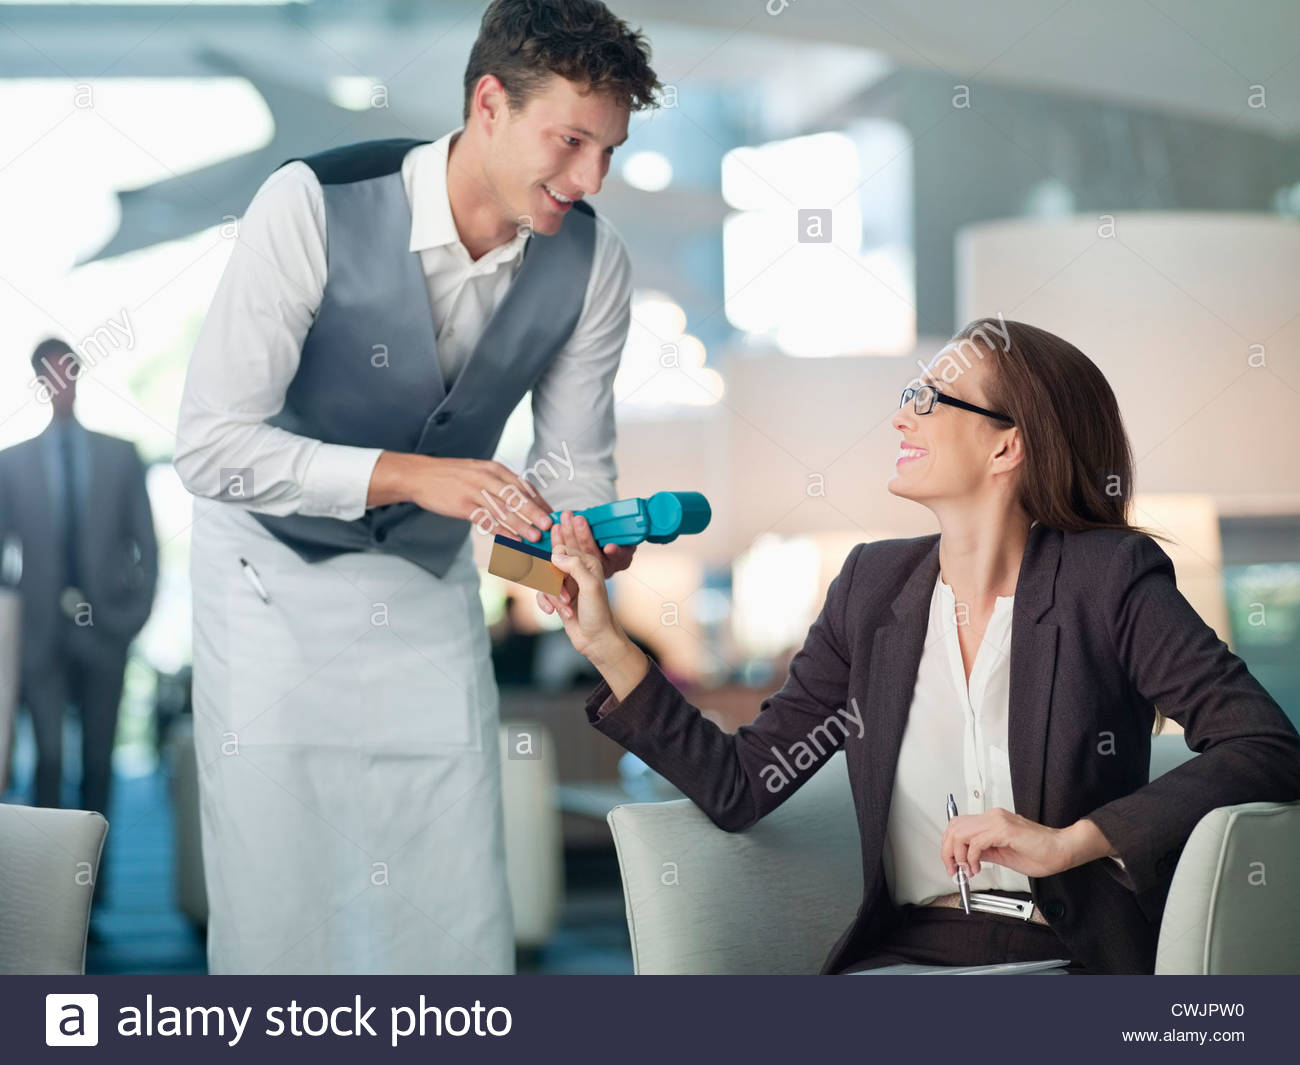 Waiter processing businesswoman's credit card with credit card reader Stock Photo